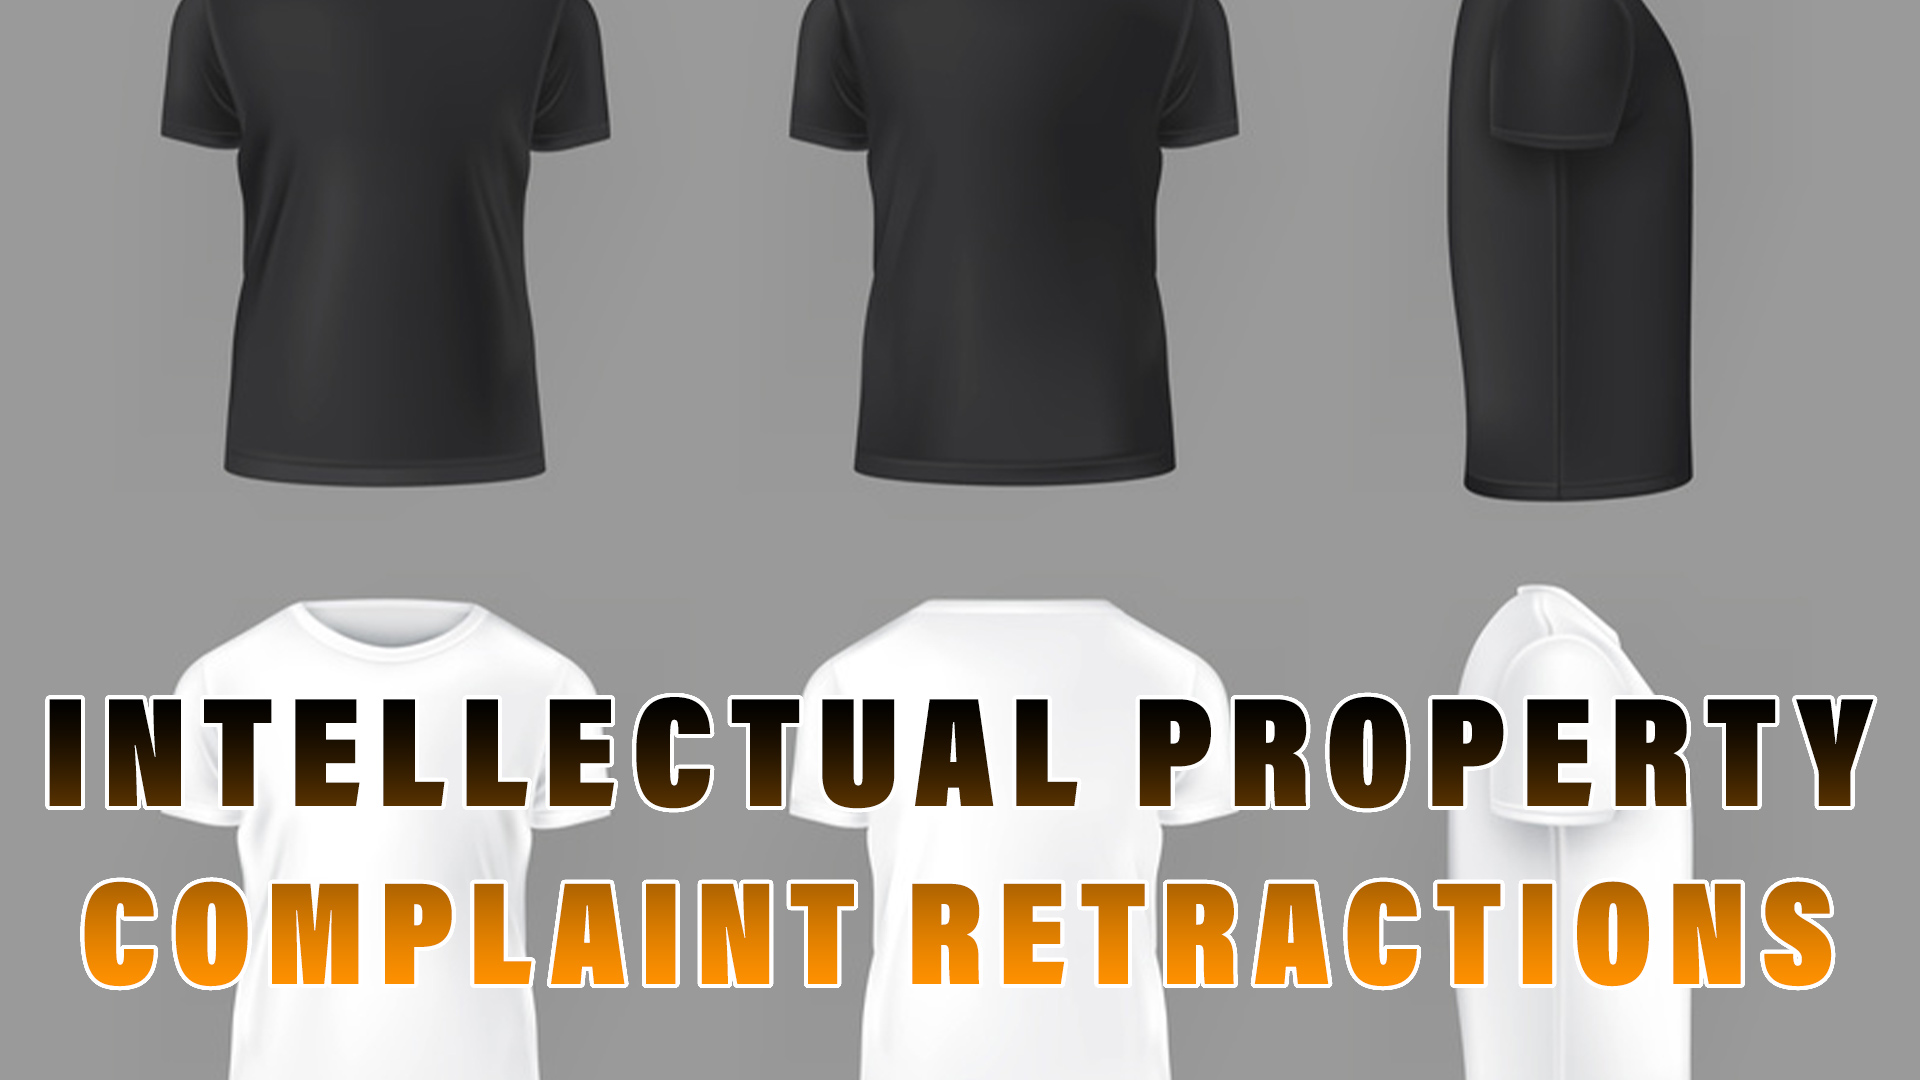 Intellectual Property Complaint Retractions